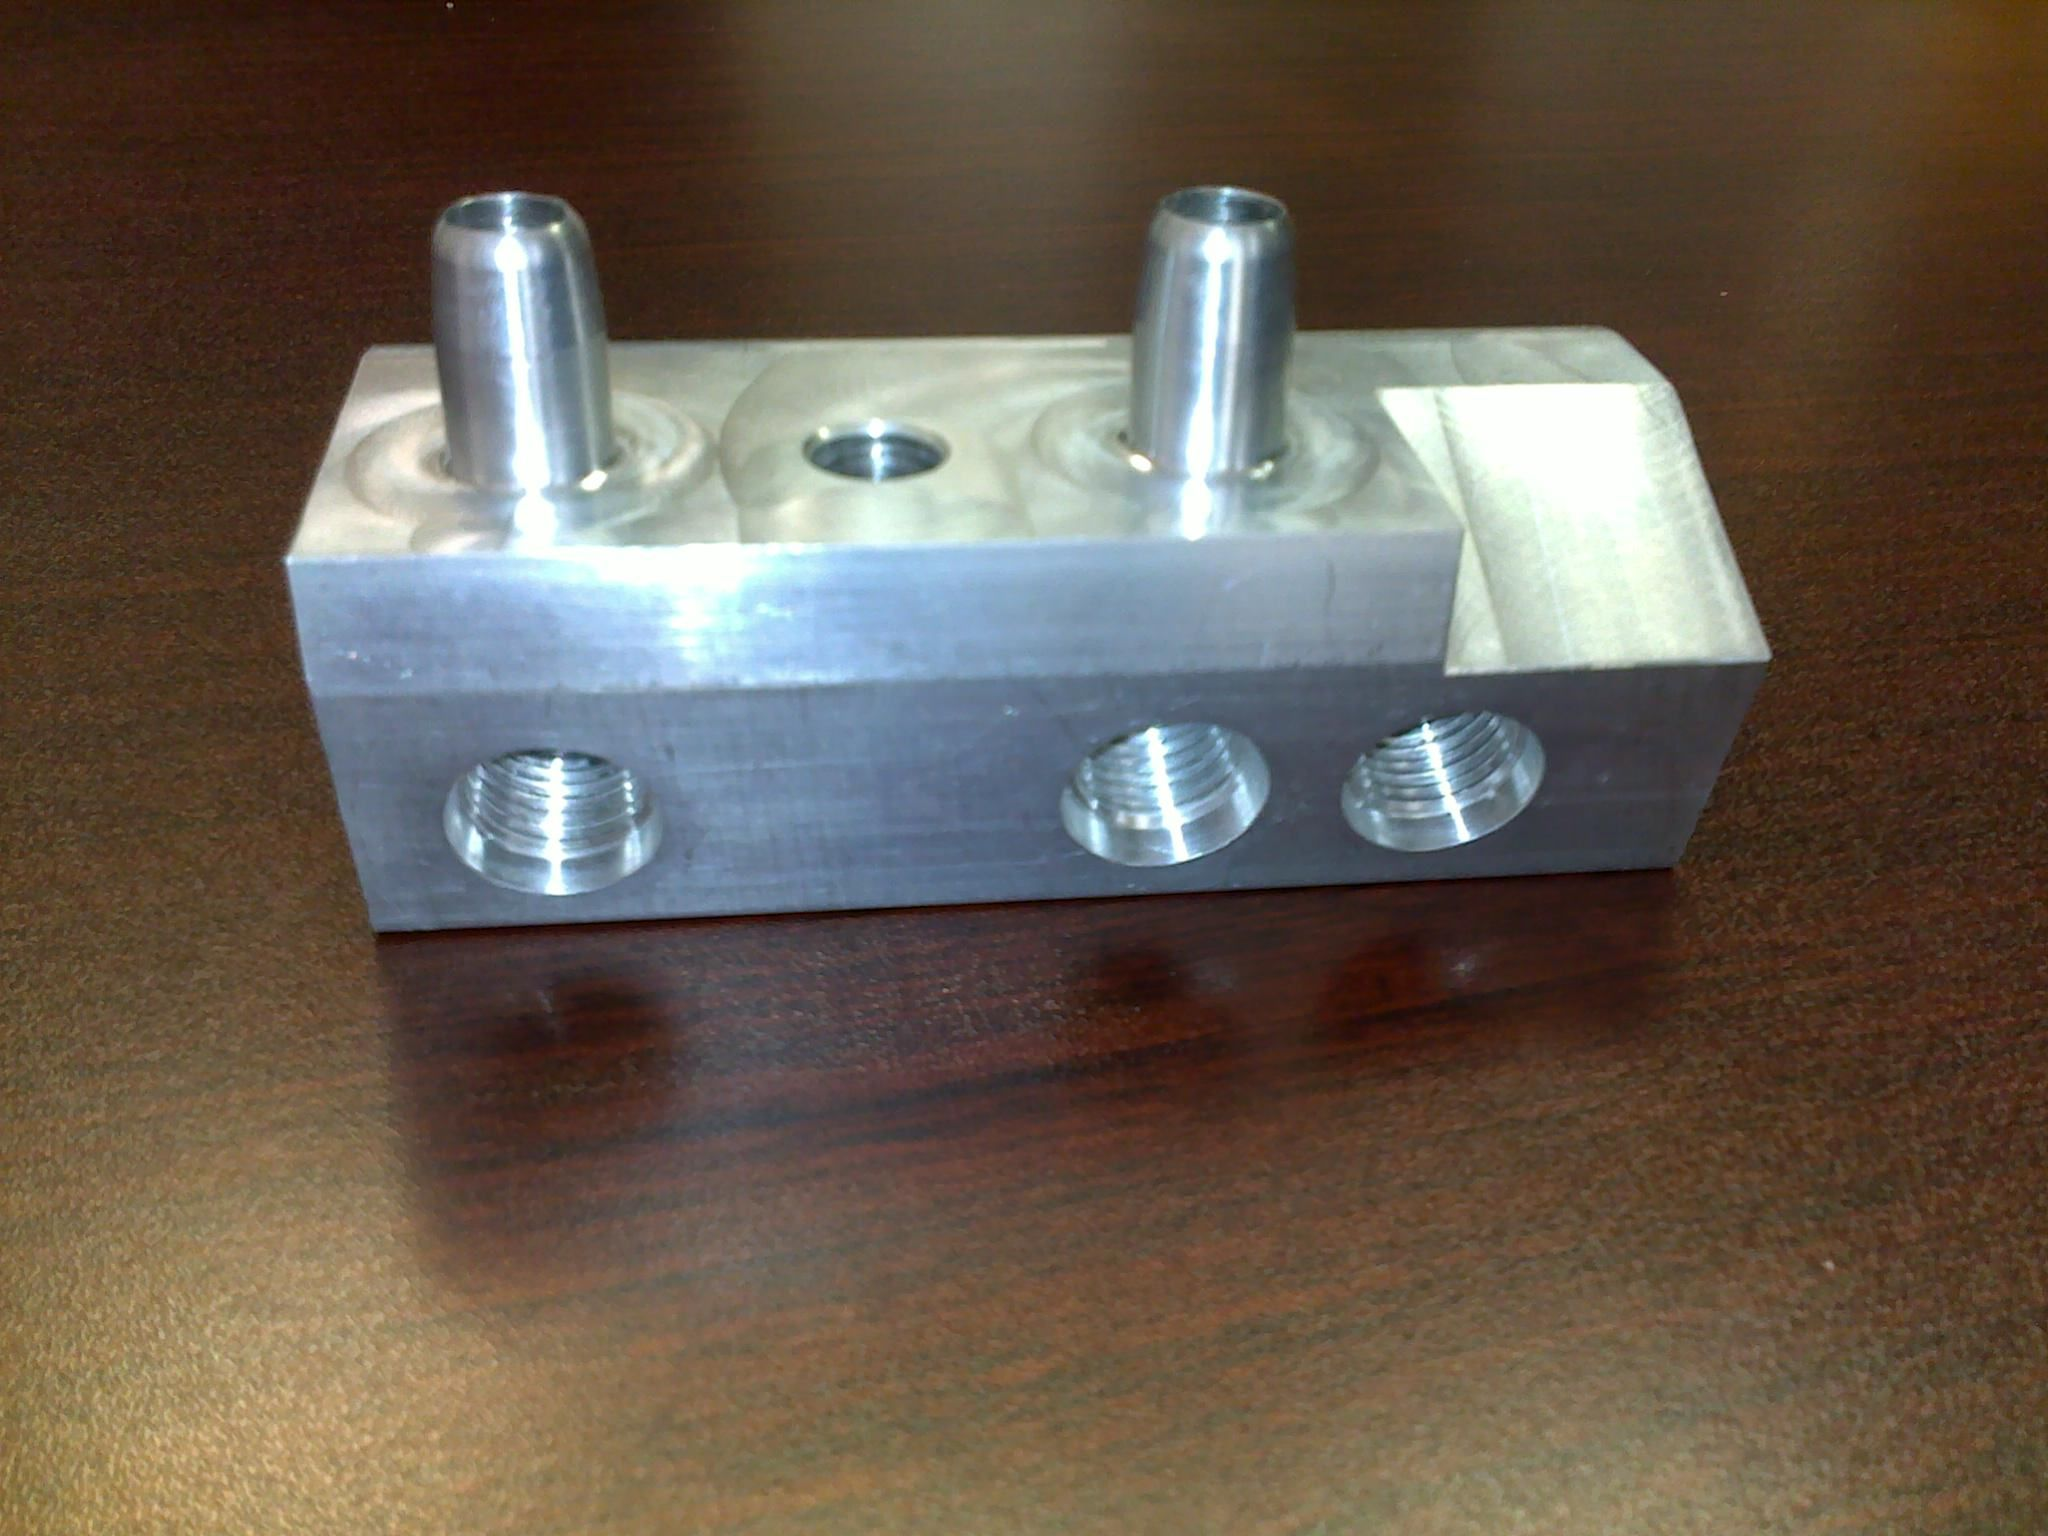 #Extruded and #Machined Block by TFG USA. For more info on our services, please visit http://www.tfgusa.com/